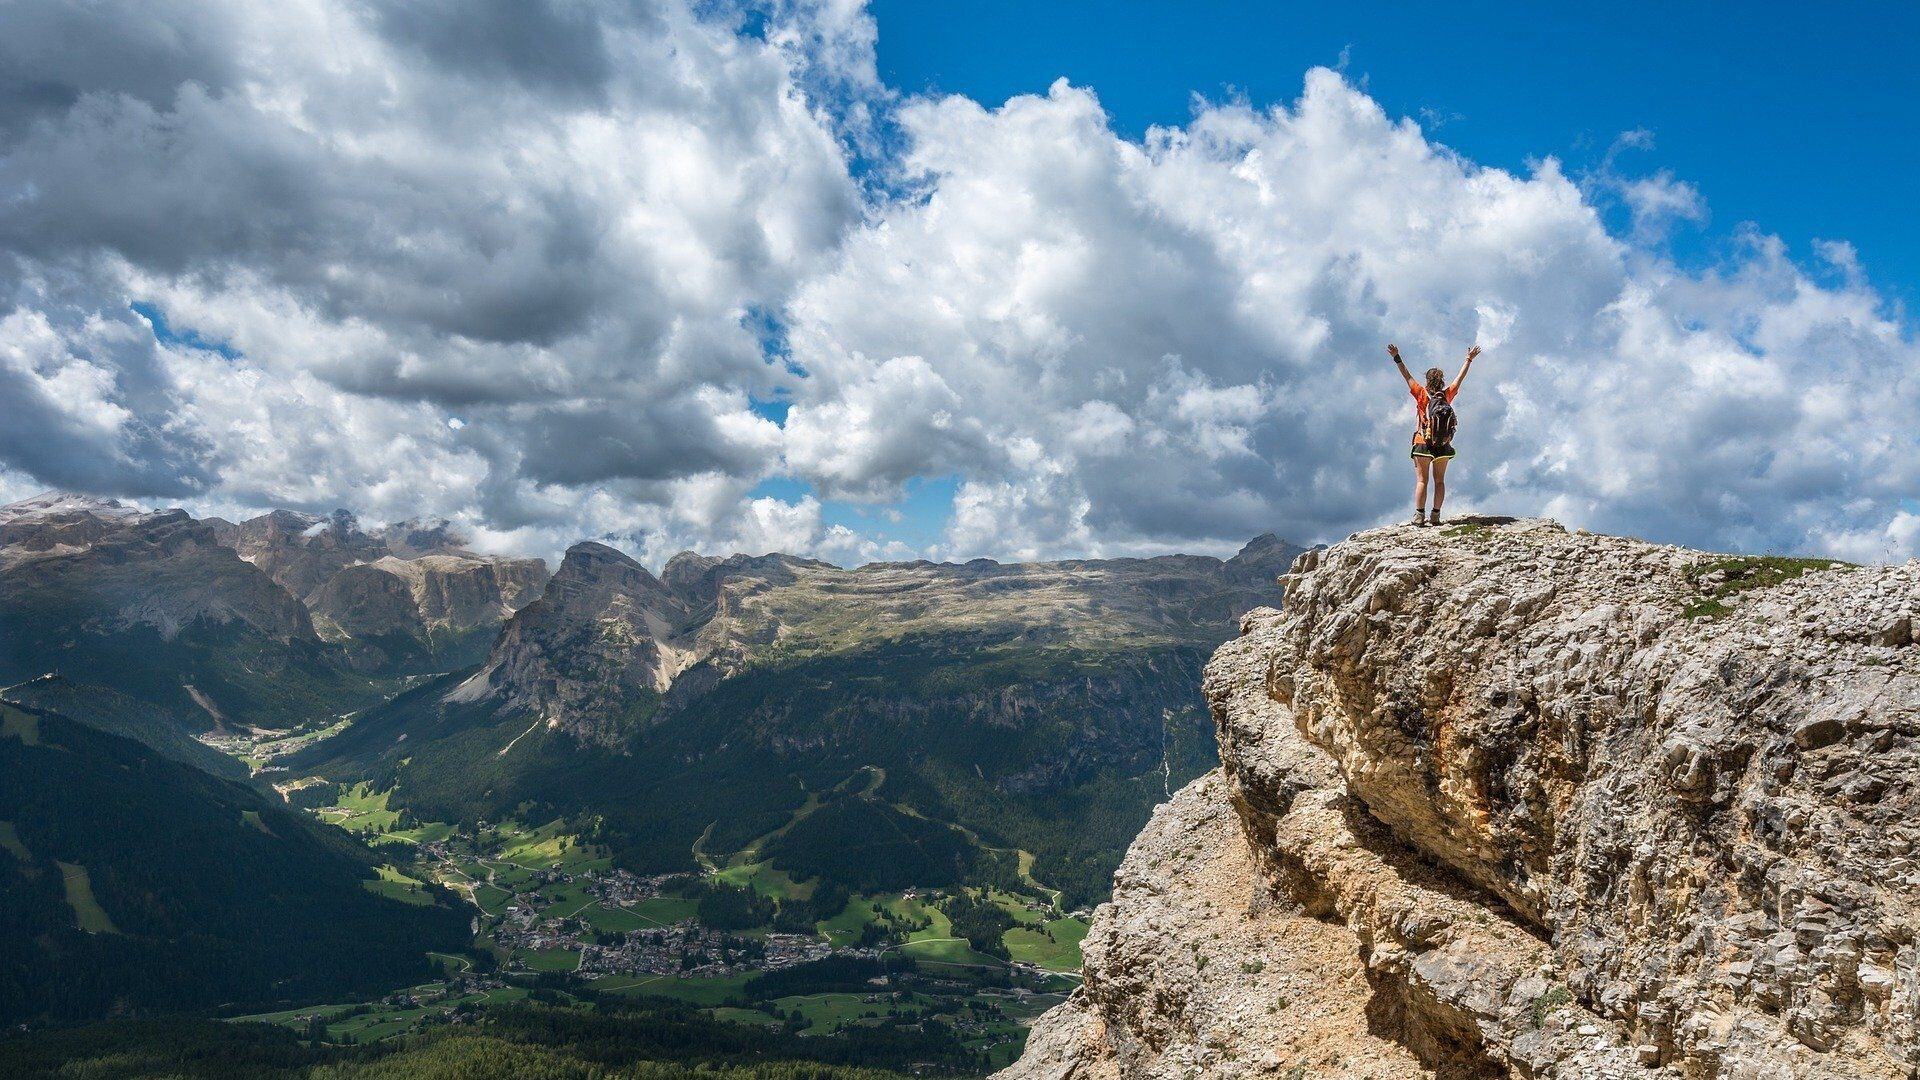 Woman in hiking gear, standing atop a mountain looking over a valley.